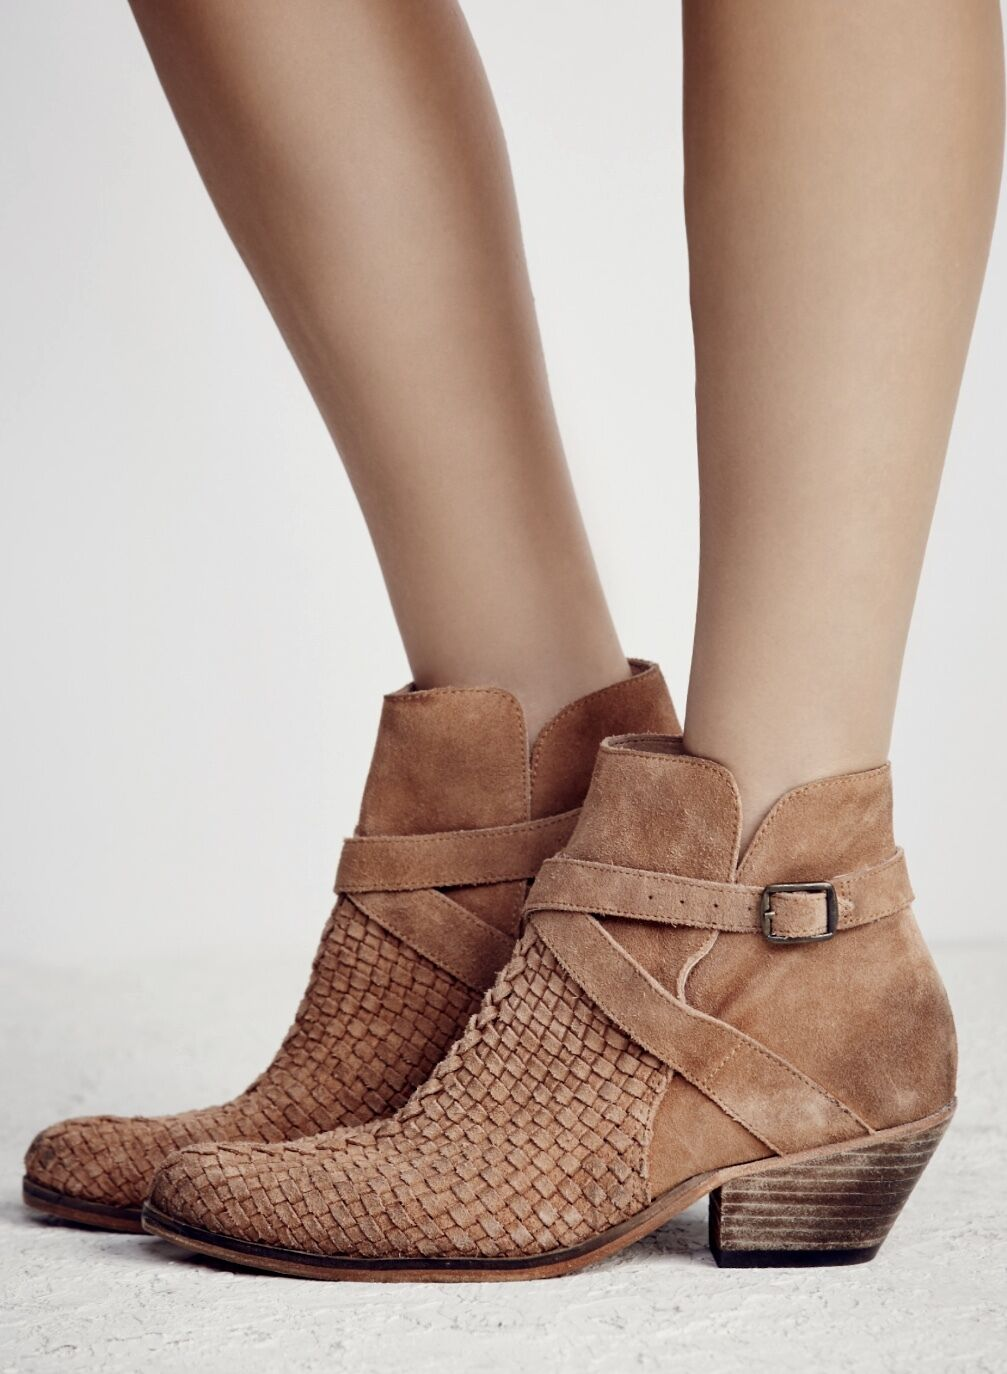 NEW Free People adobe nude tan suede Distress Weaved Ankle Buckle Stivali 38